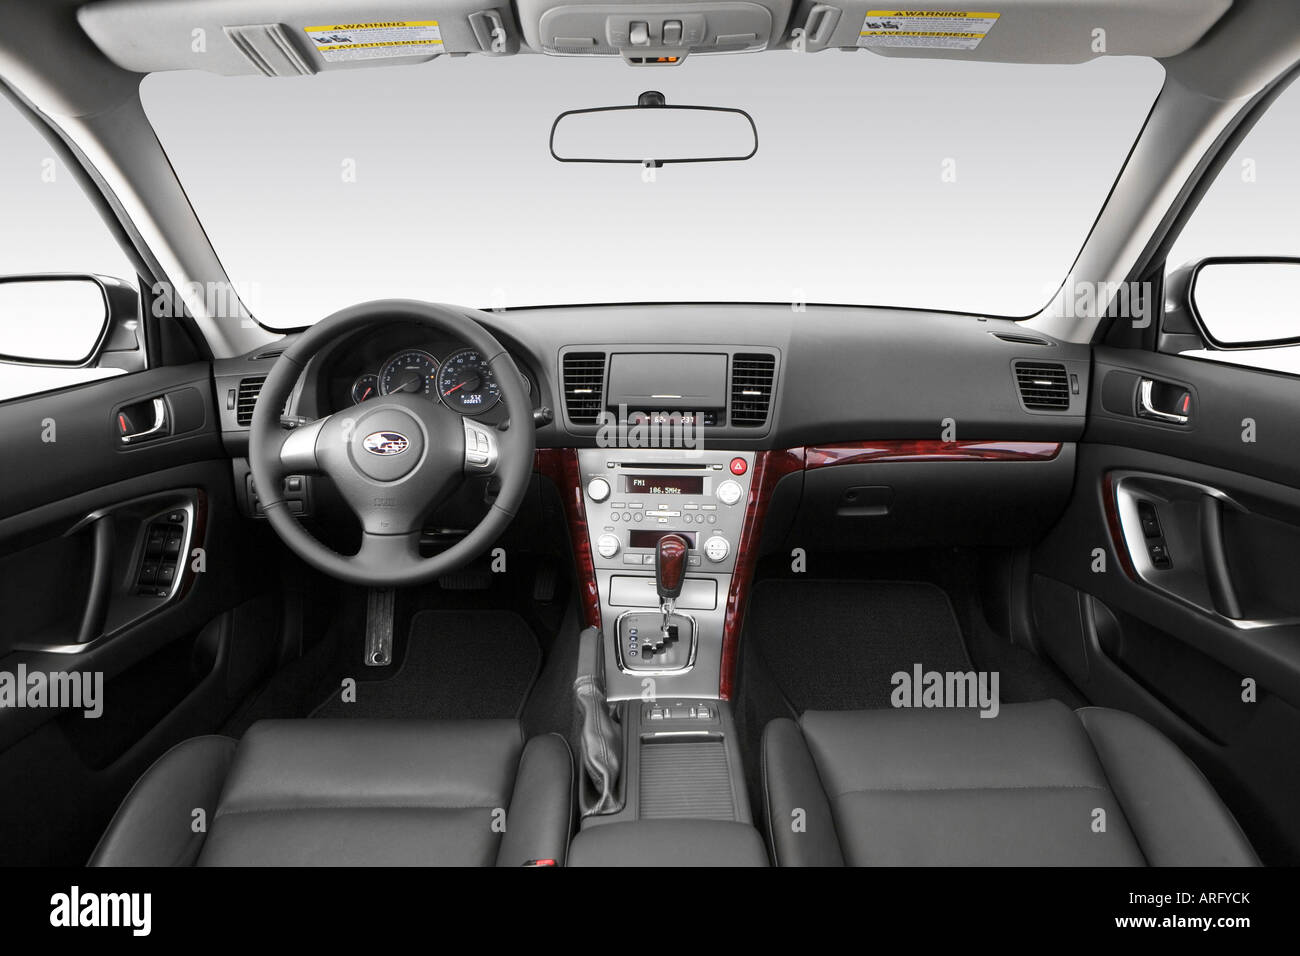 2008 subaru legacy 2.5i limited in gray - dashboard, center